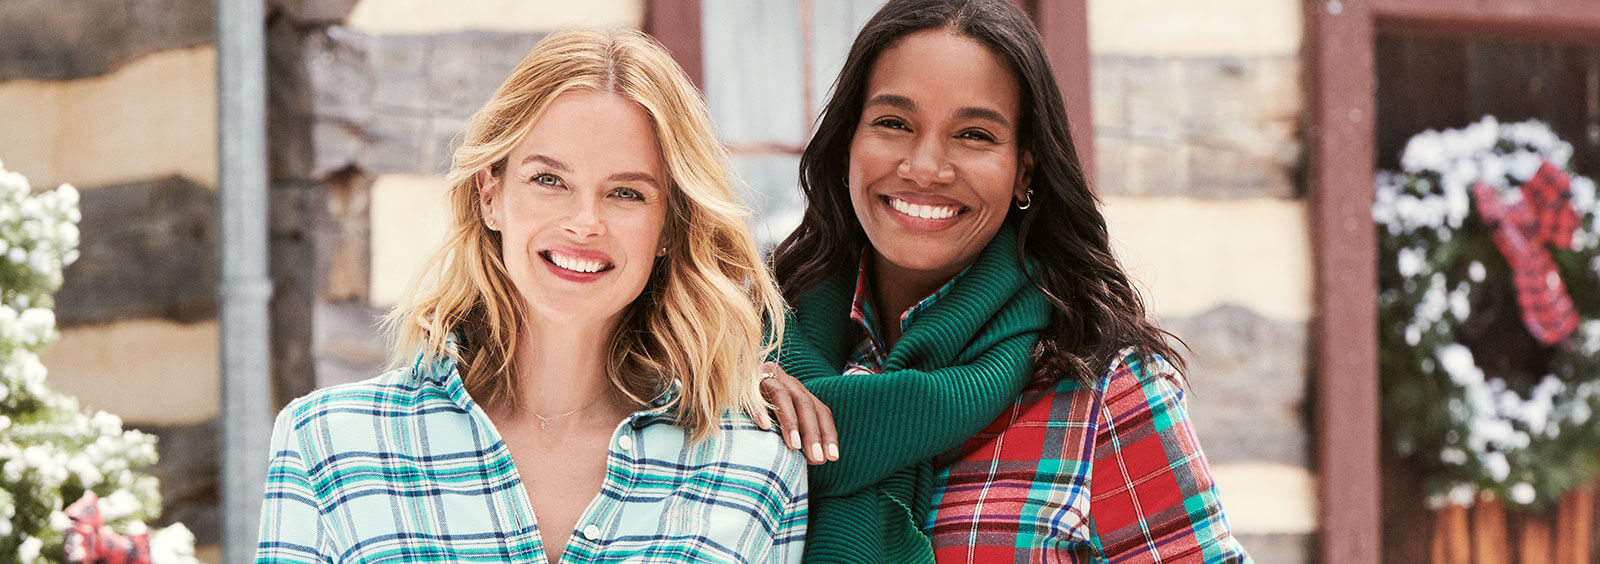 4 Unexpected Flannel Pieces Your Wardrobe Needs   Lands' End